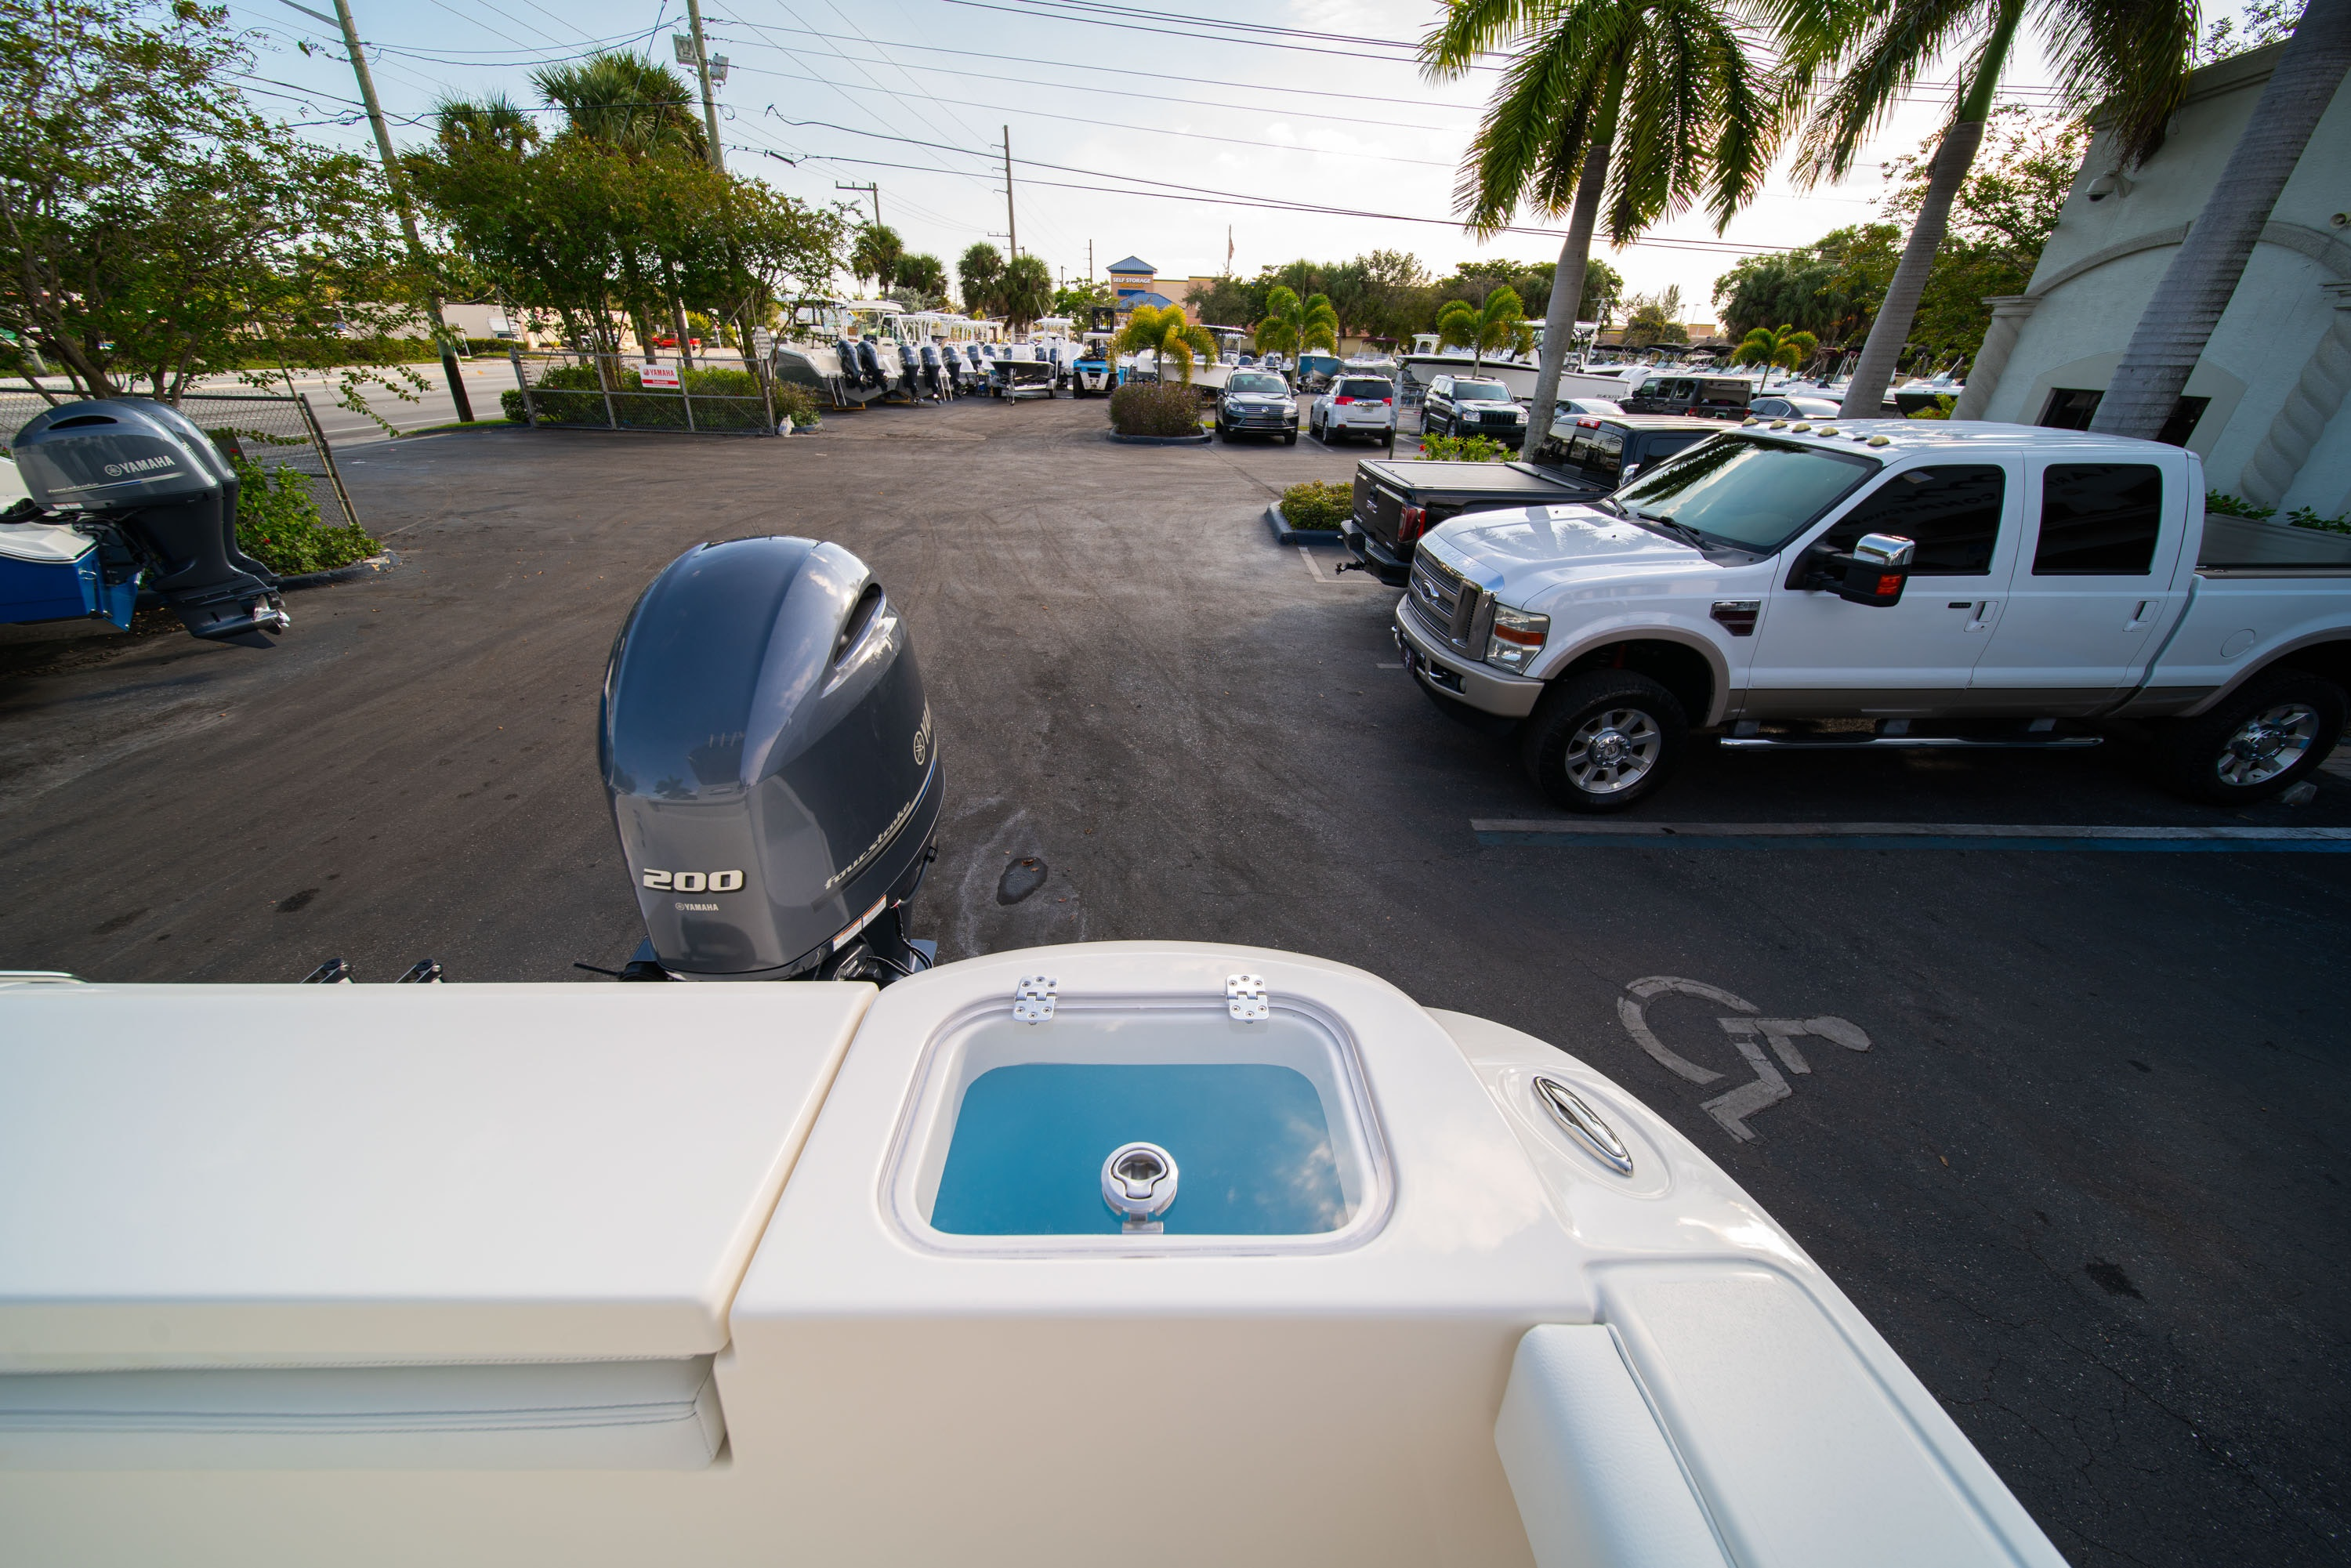 Thumbnail 14 for New 2020 Cobia 220 CC boat for sale in West Palm Beach, FL